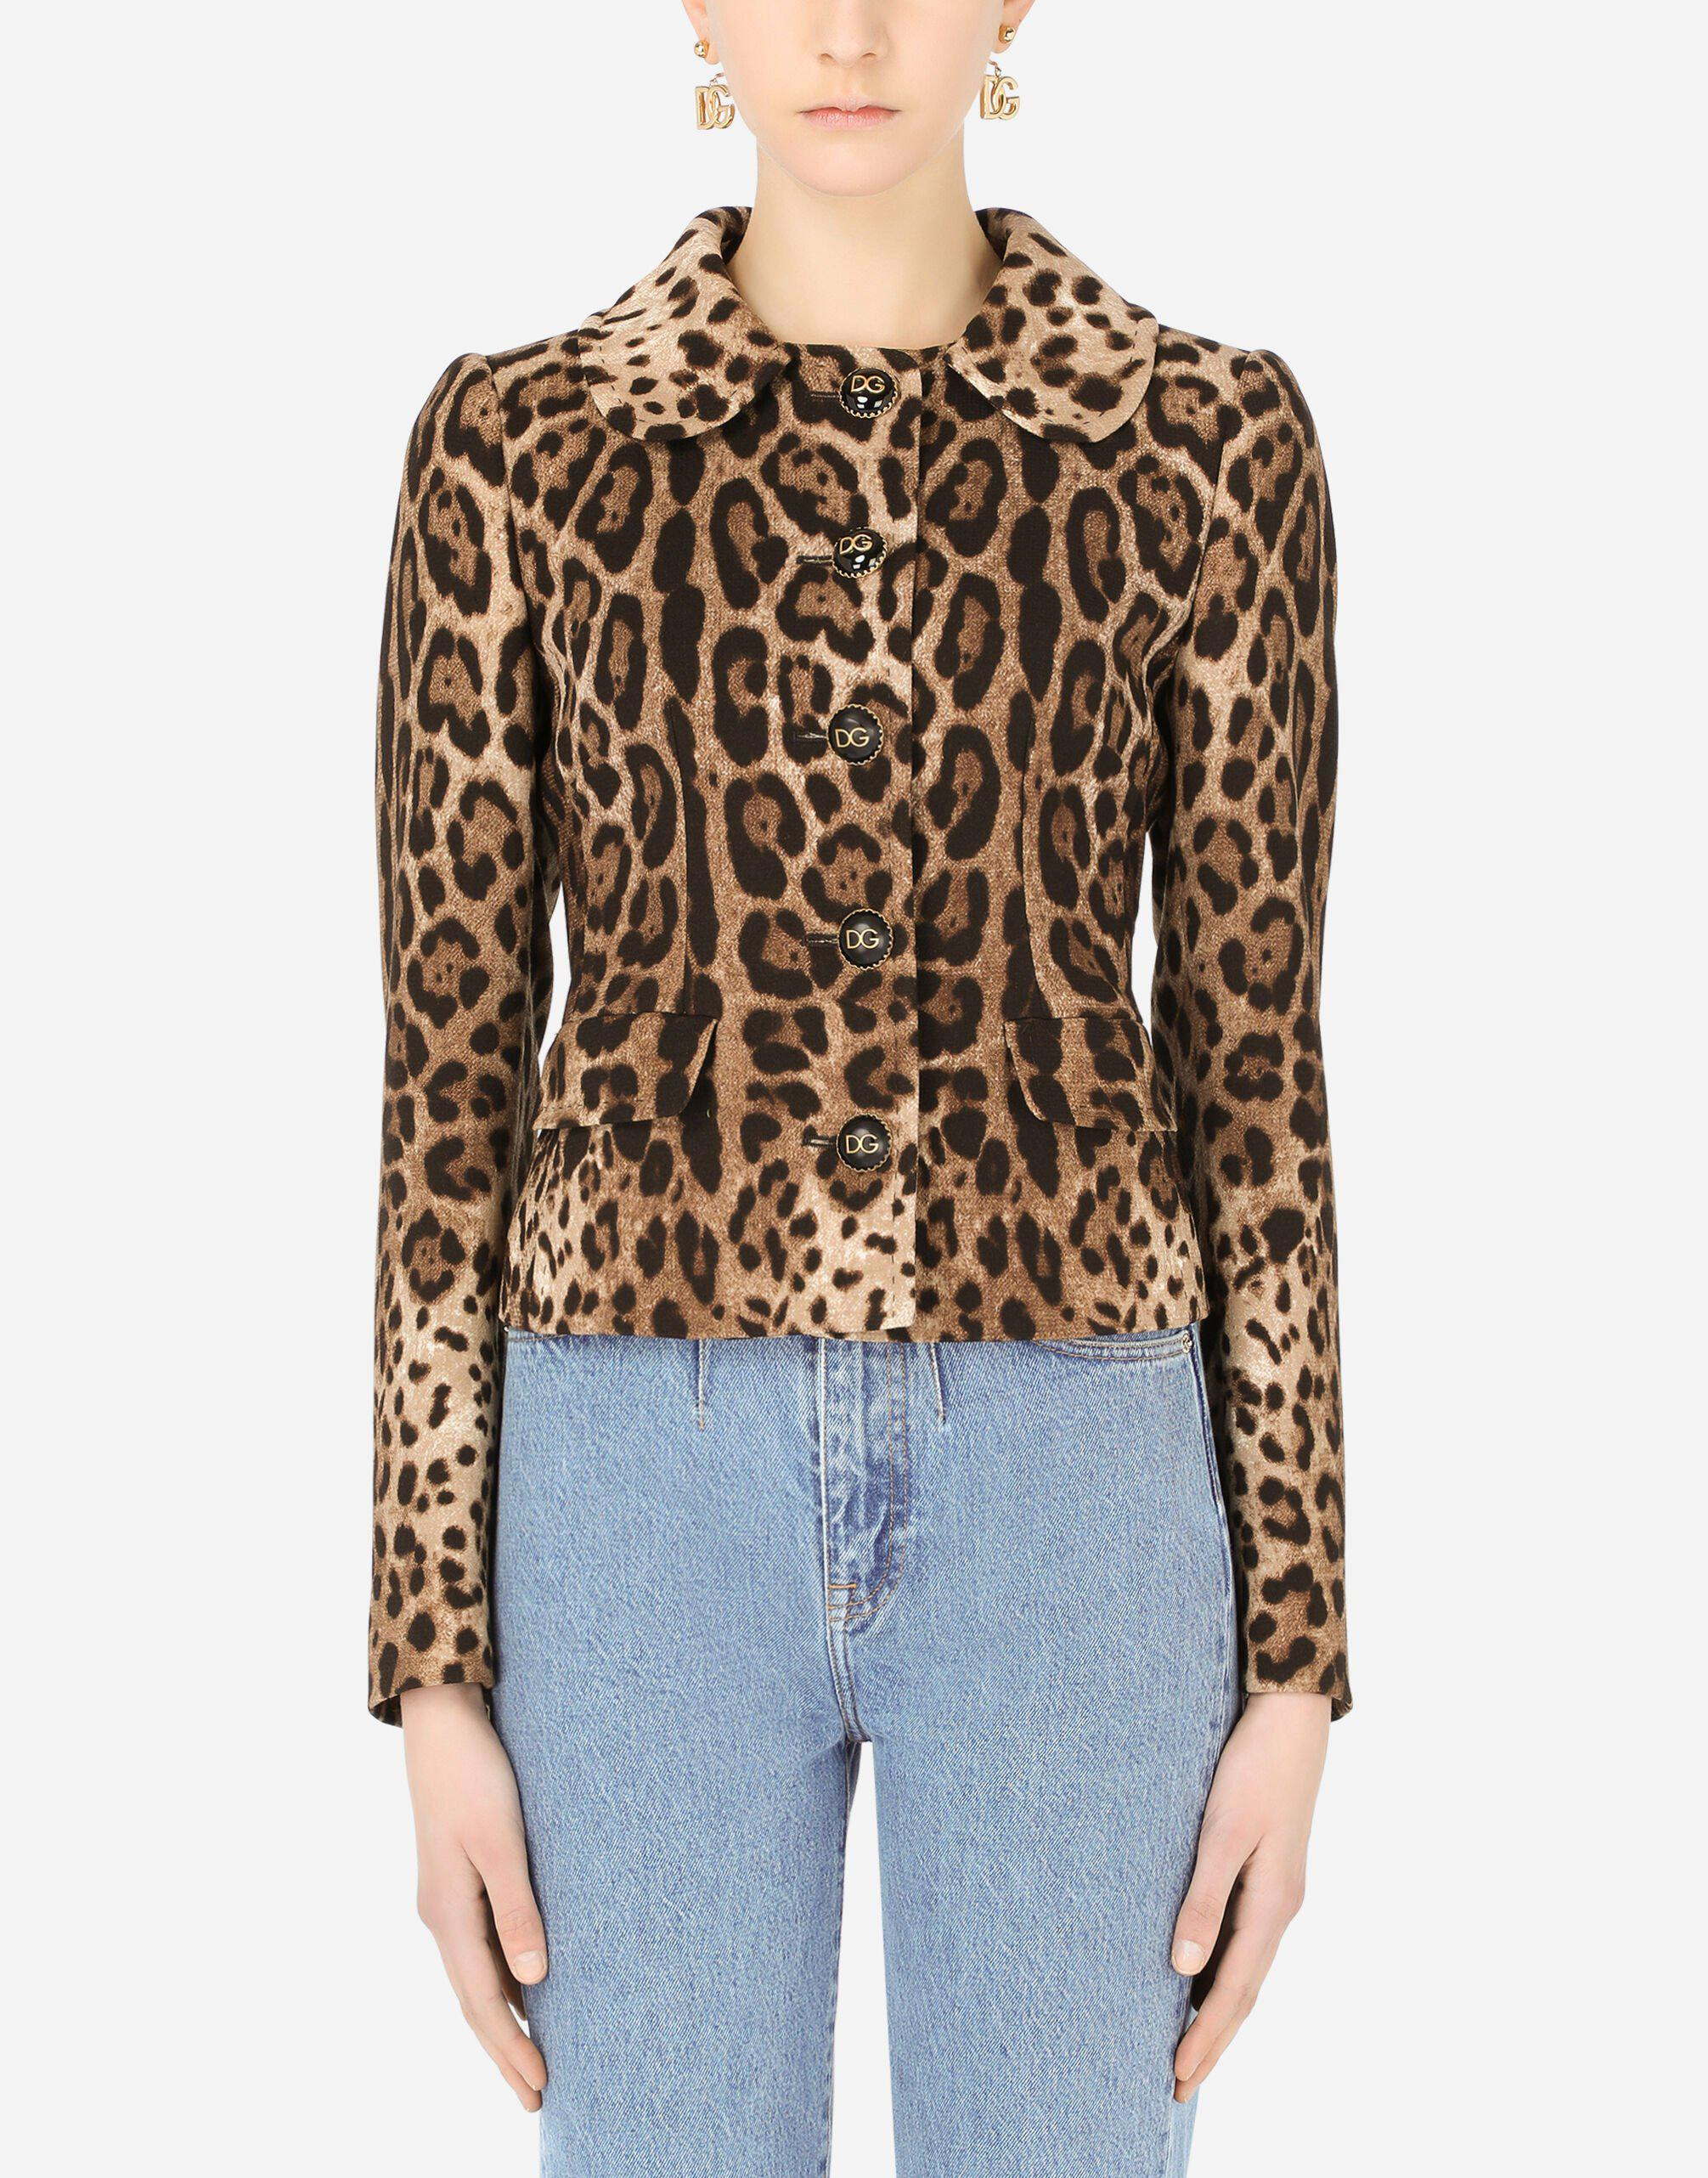 Double crepe Dolce jacket with leopard print and cabochon DG buttons